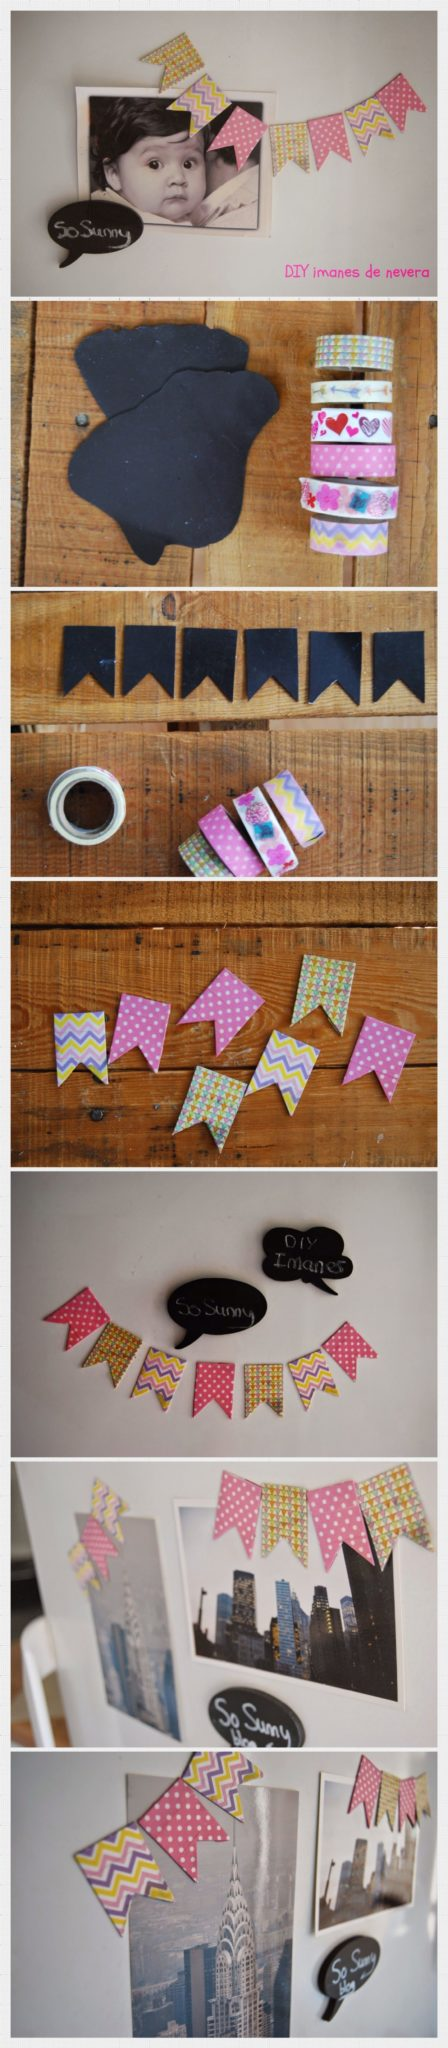 decorar fotos de bebes con cintas washi